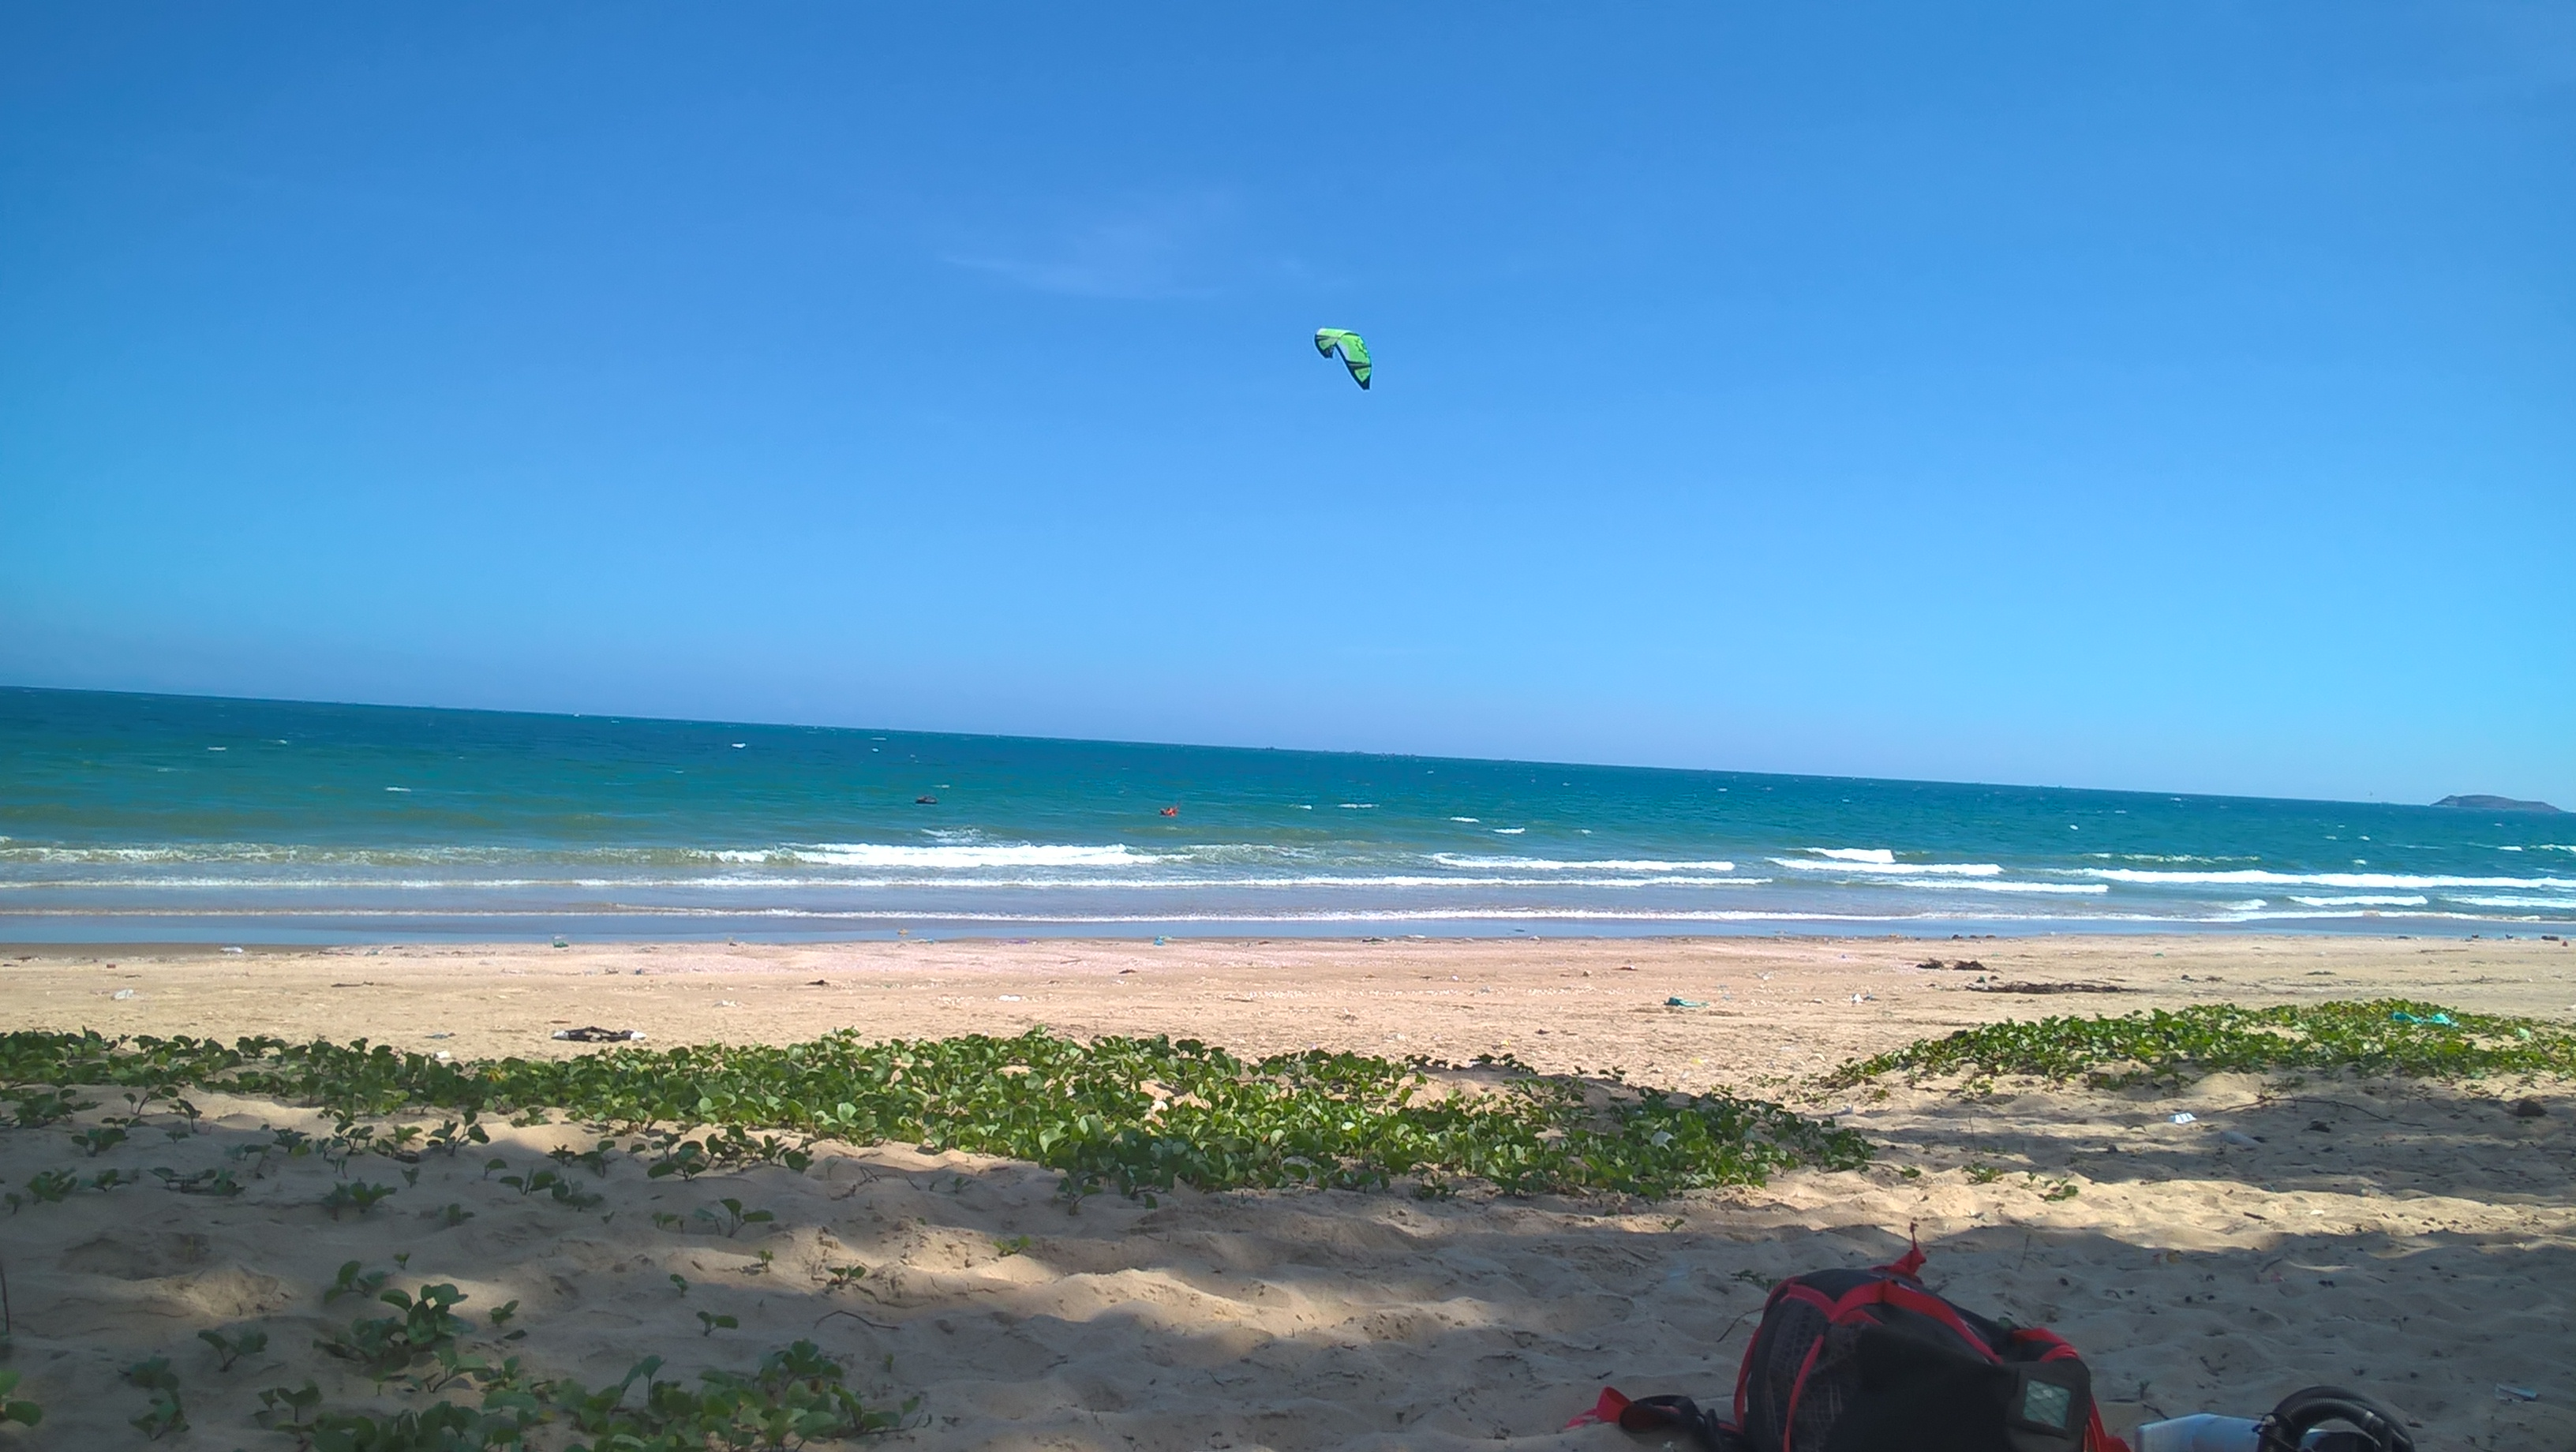 The One Of The Best Days For Kitesurfing in Mui ne in Year